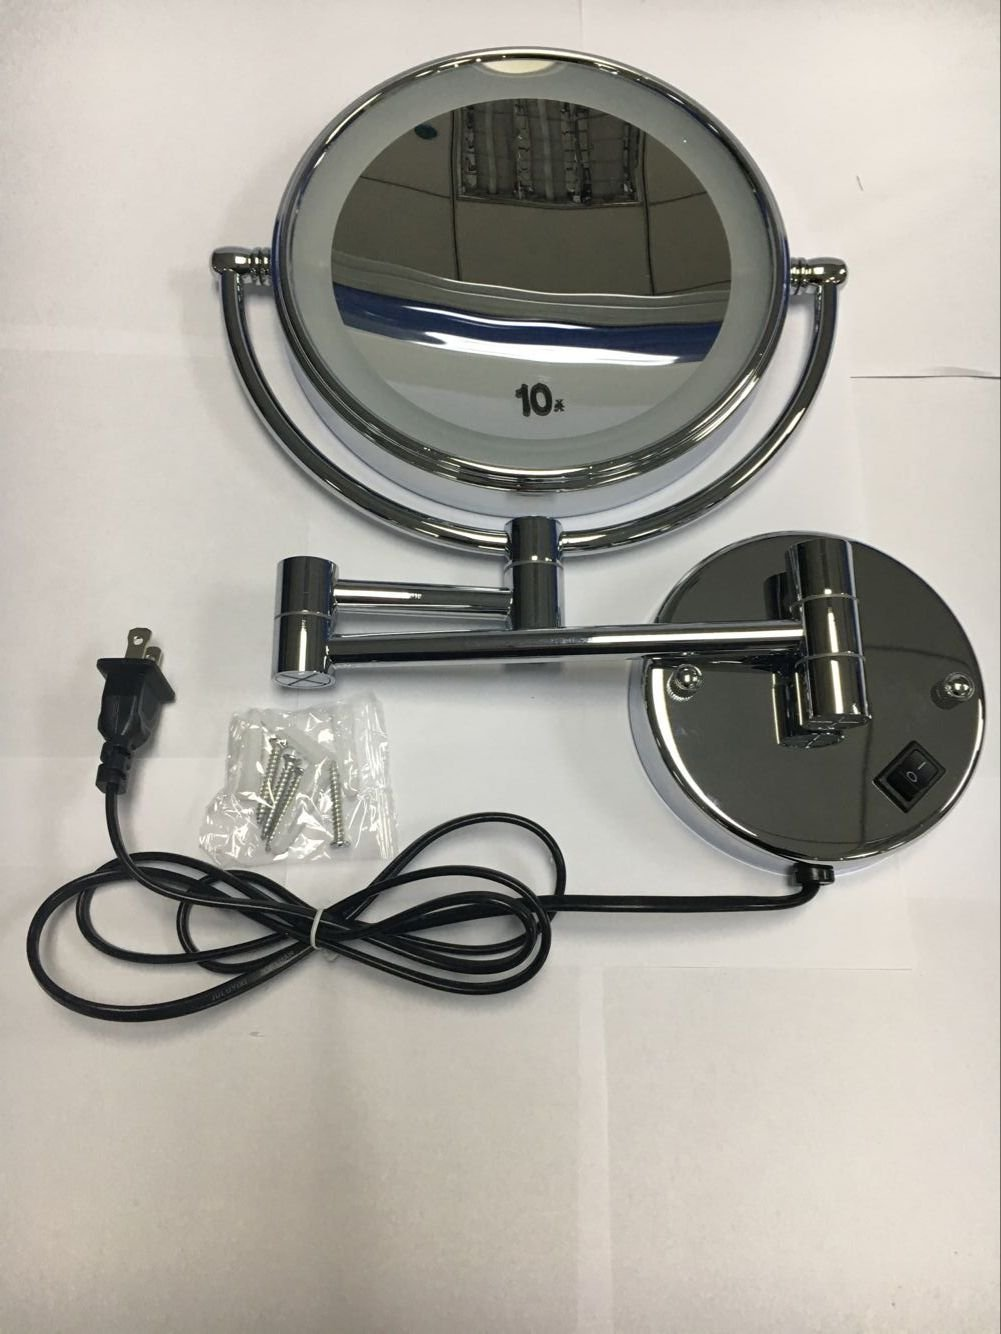 WAll Mounted Makeup Mirror, 8-Inch Two-Sided Swivel Cosmetic Mirror with Magnification,Chrome Finish 10X Magnification